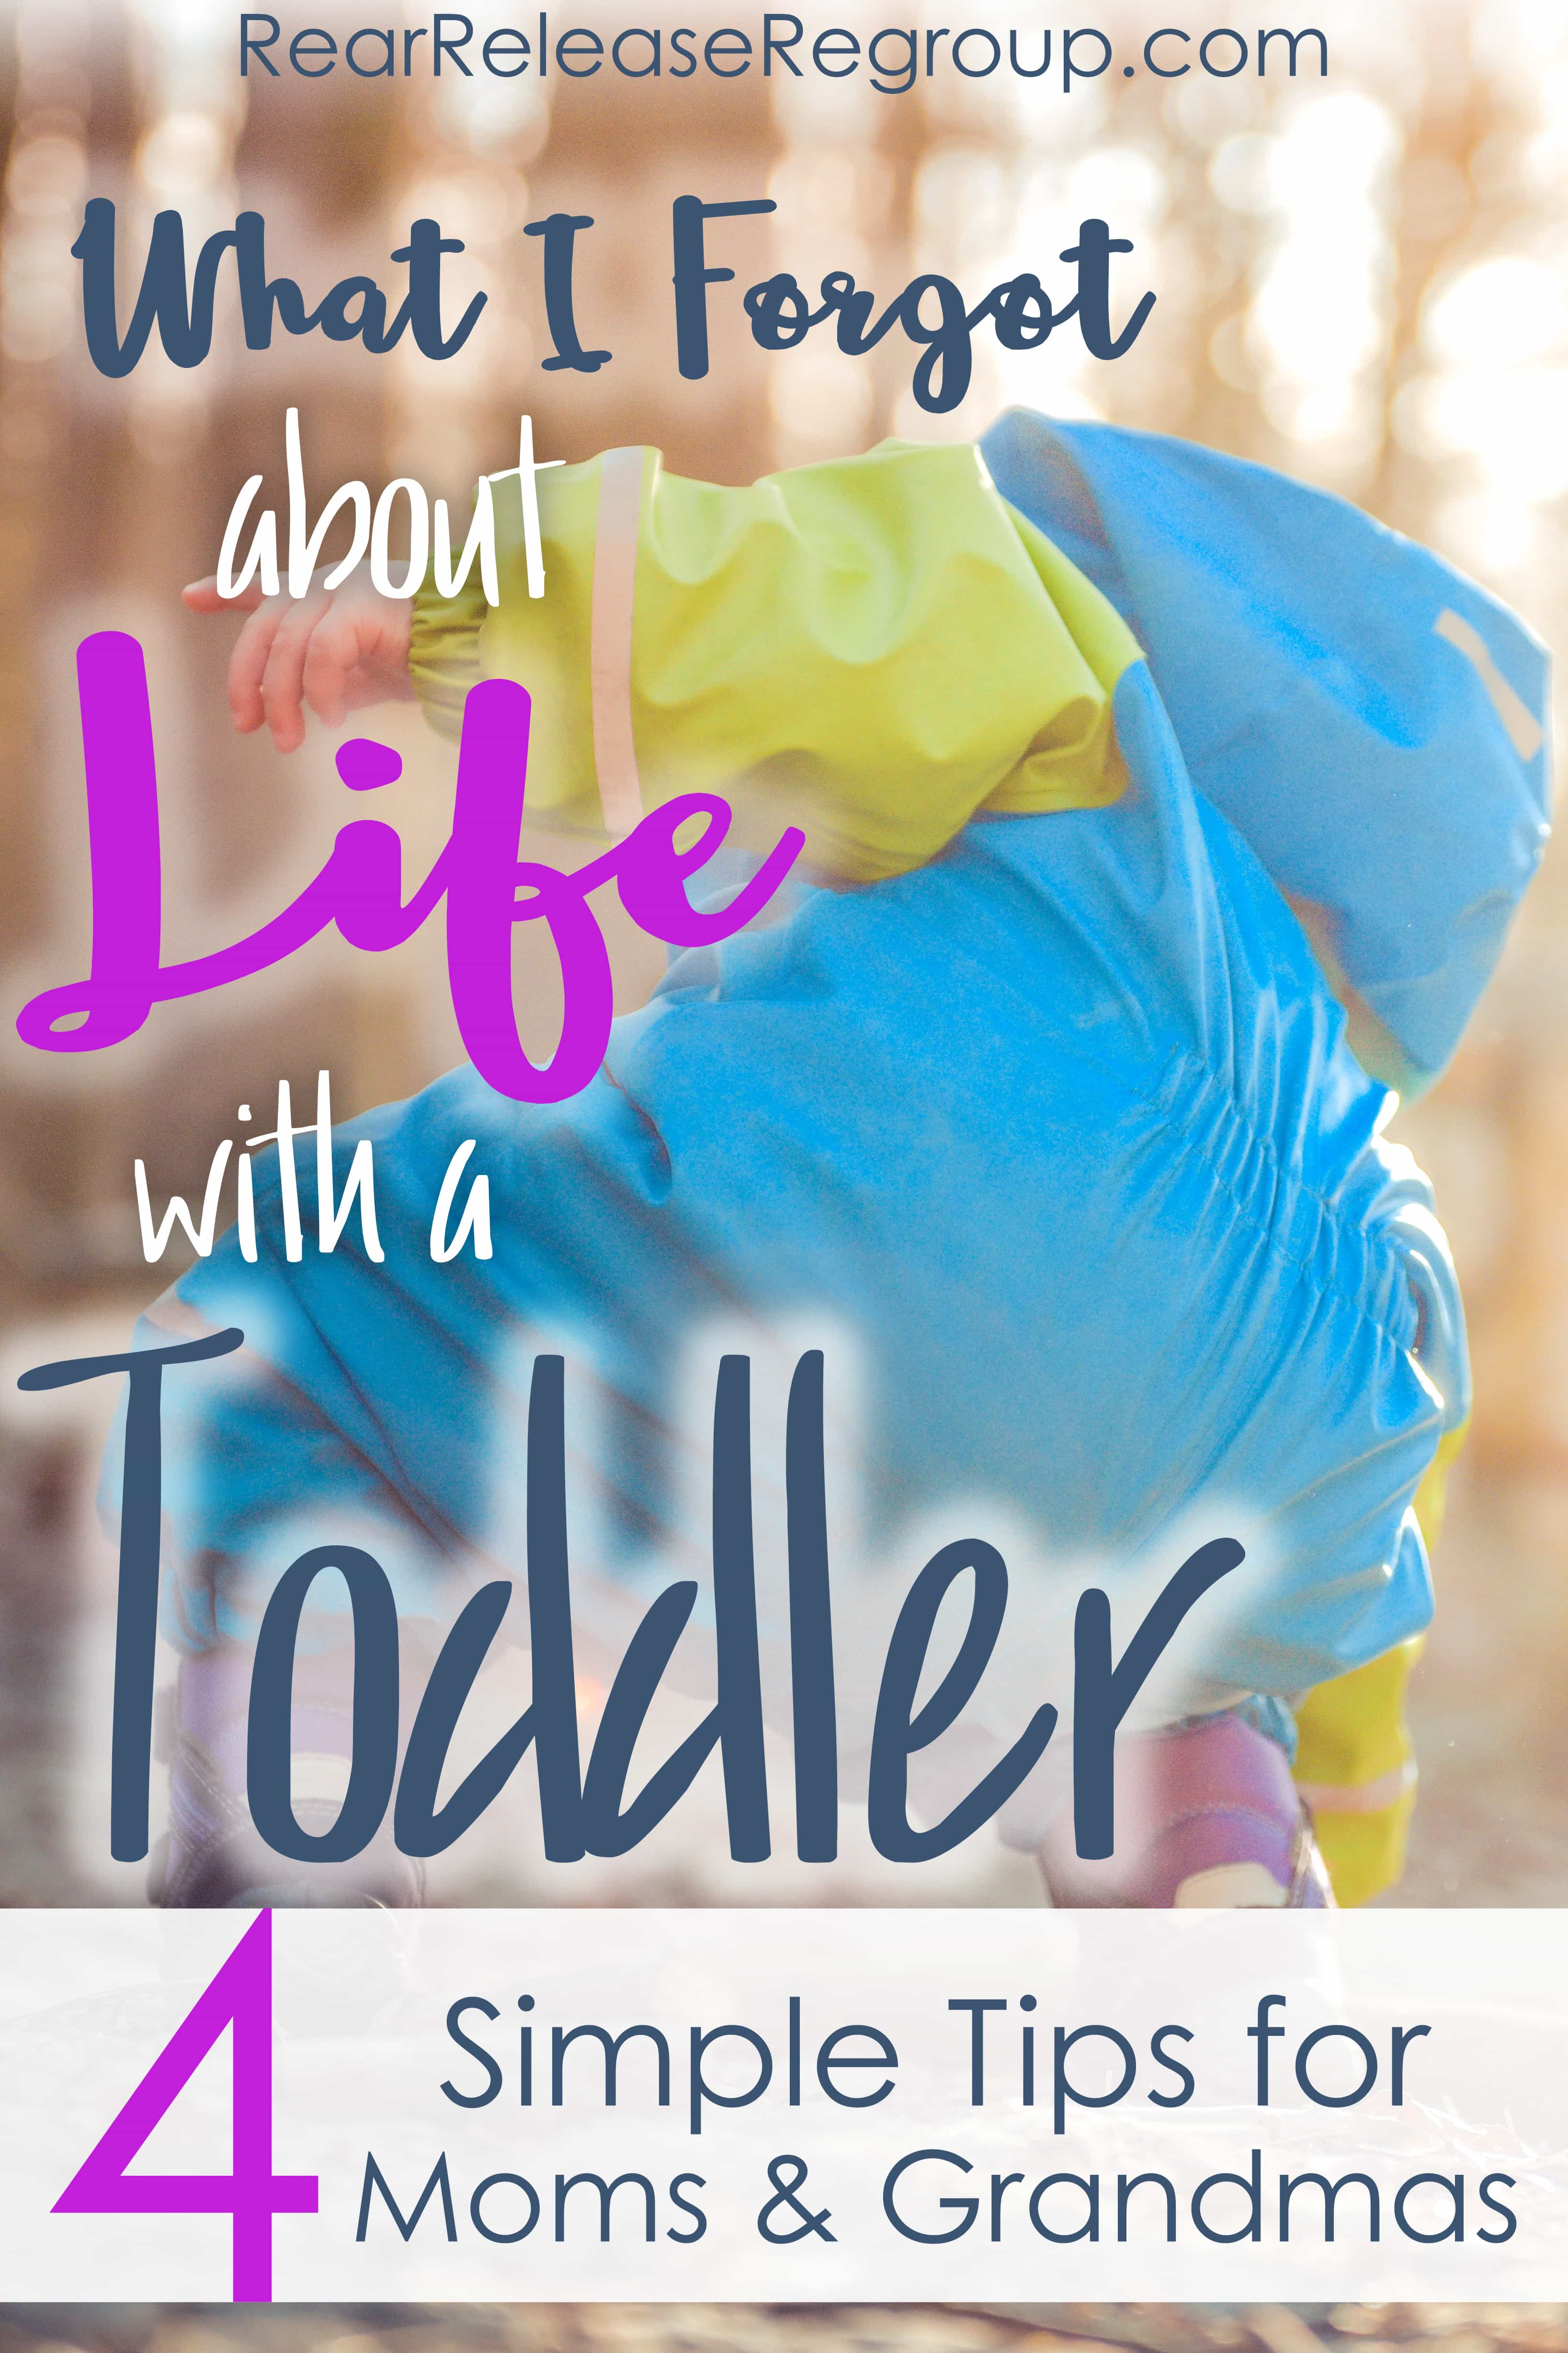 What I forgot about life with a toddler; 4 simple tips for moms and Gigis (like me) for coping and capturing the joy moments.